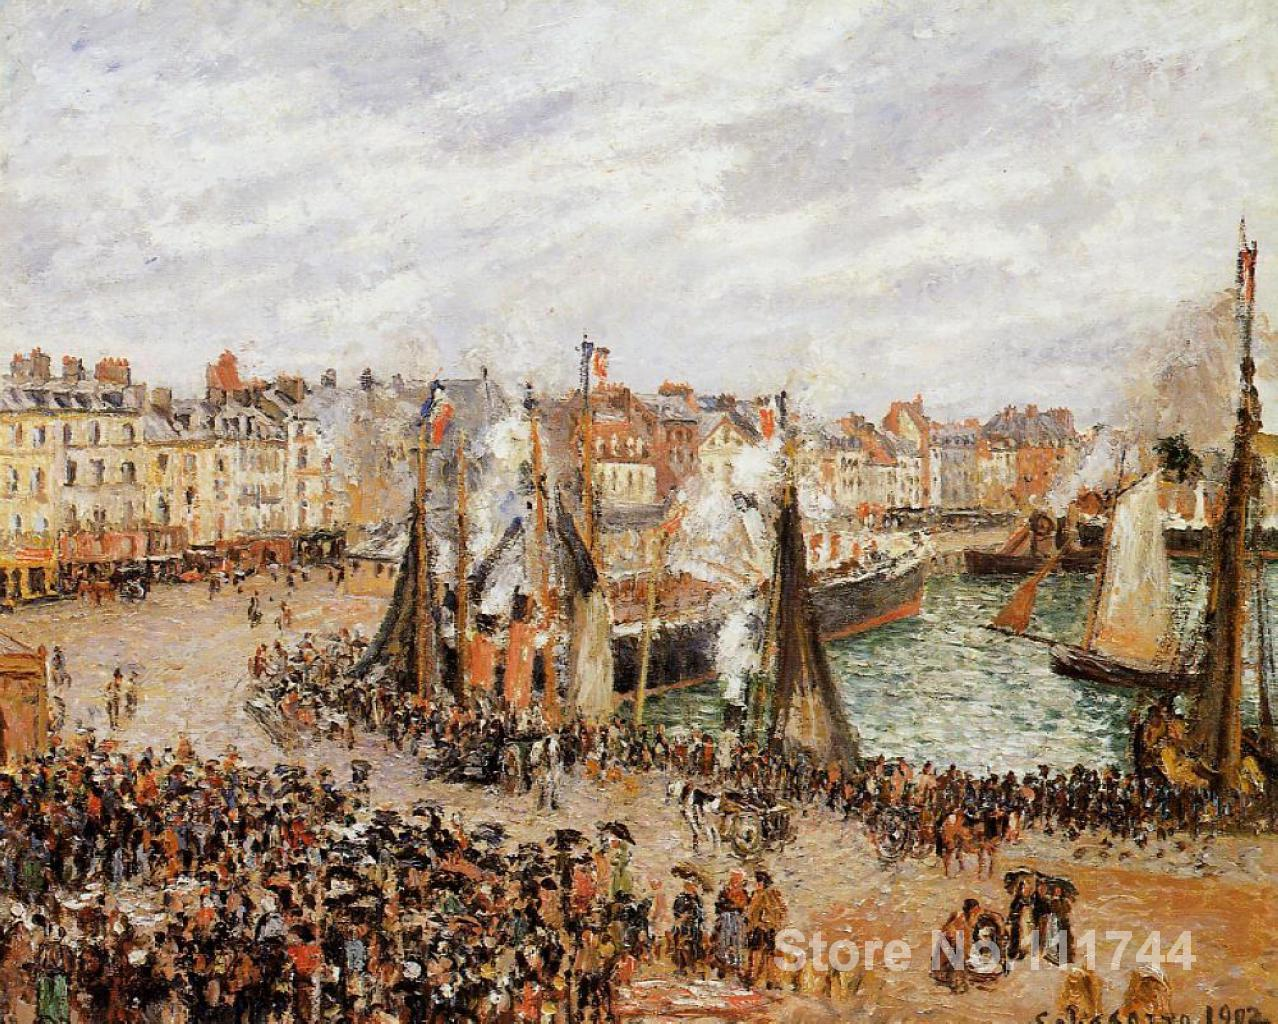 French impressionist paintings The Fishmarket Dieppe Grey